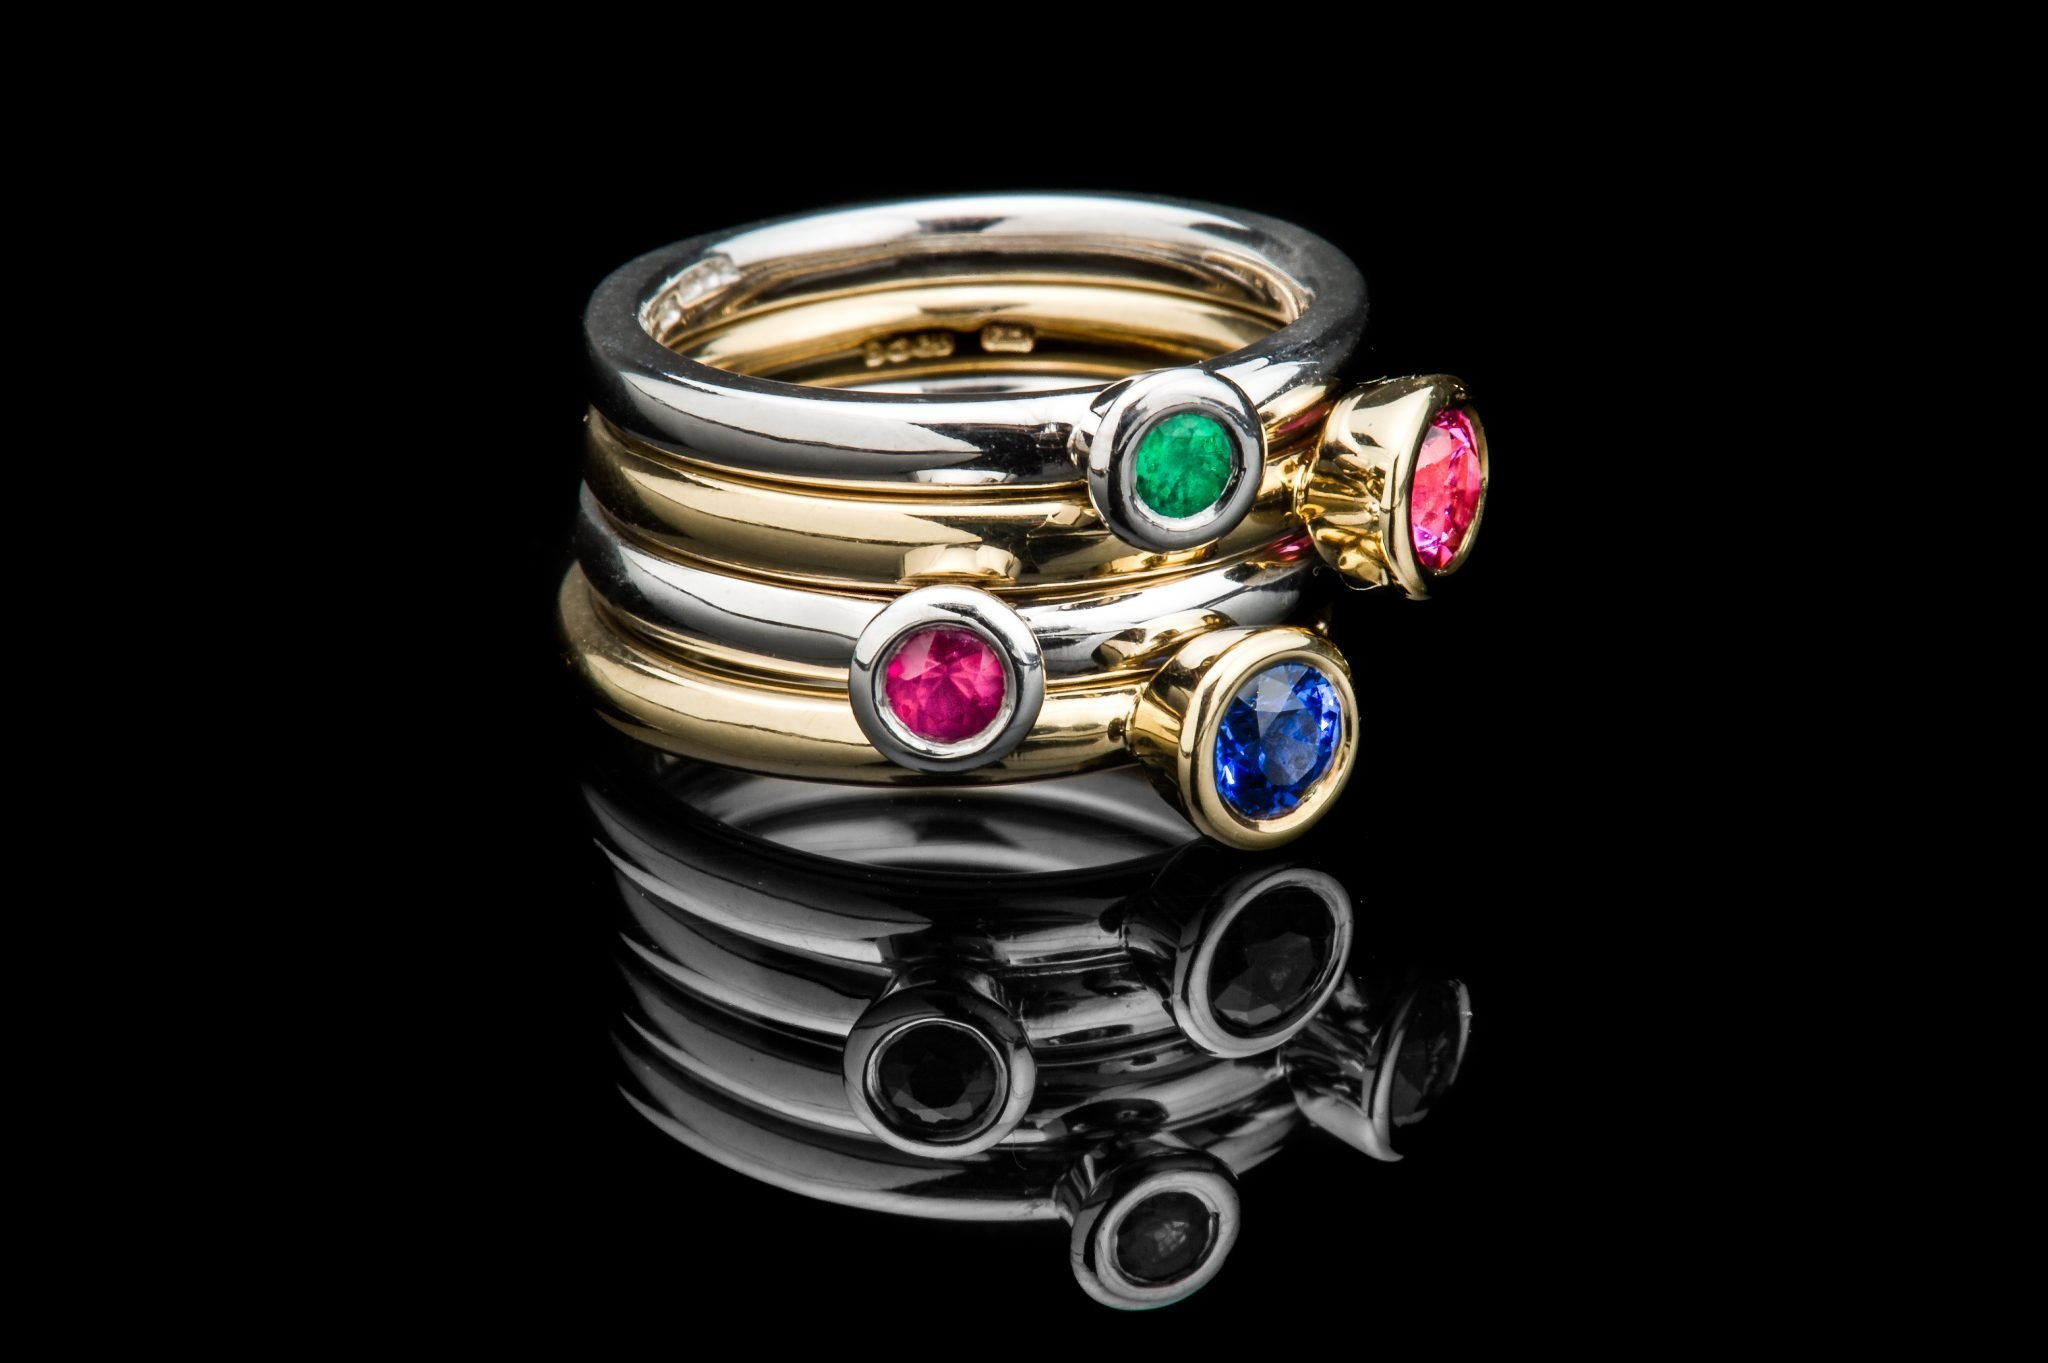 Elegant stacking rings - begin your collection this Christmas